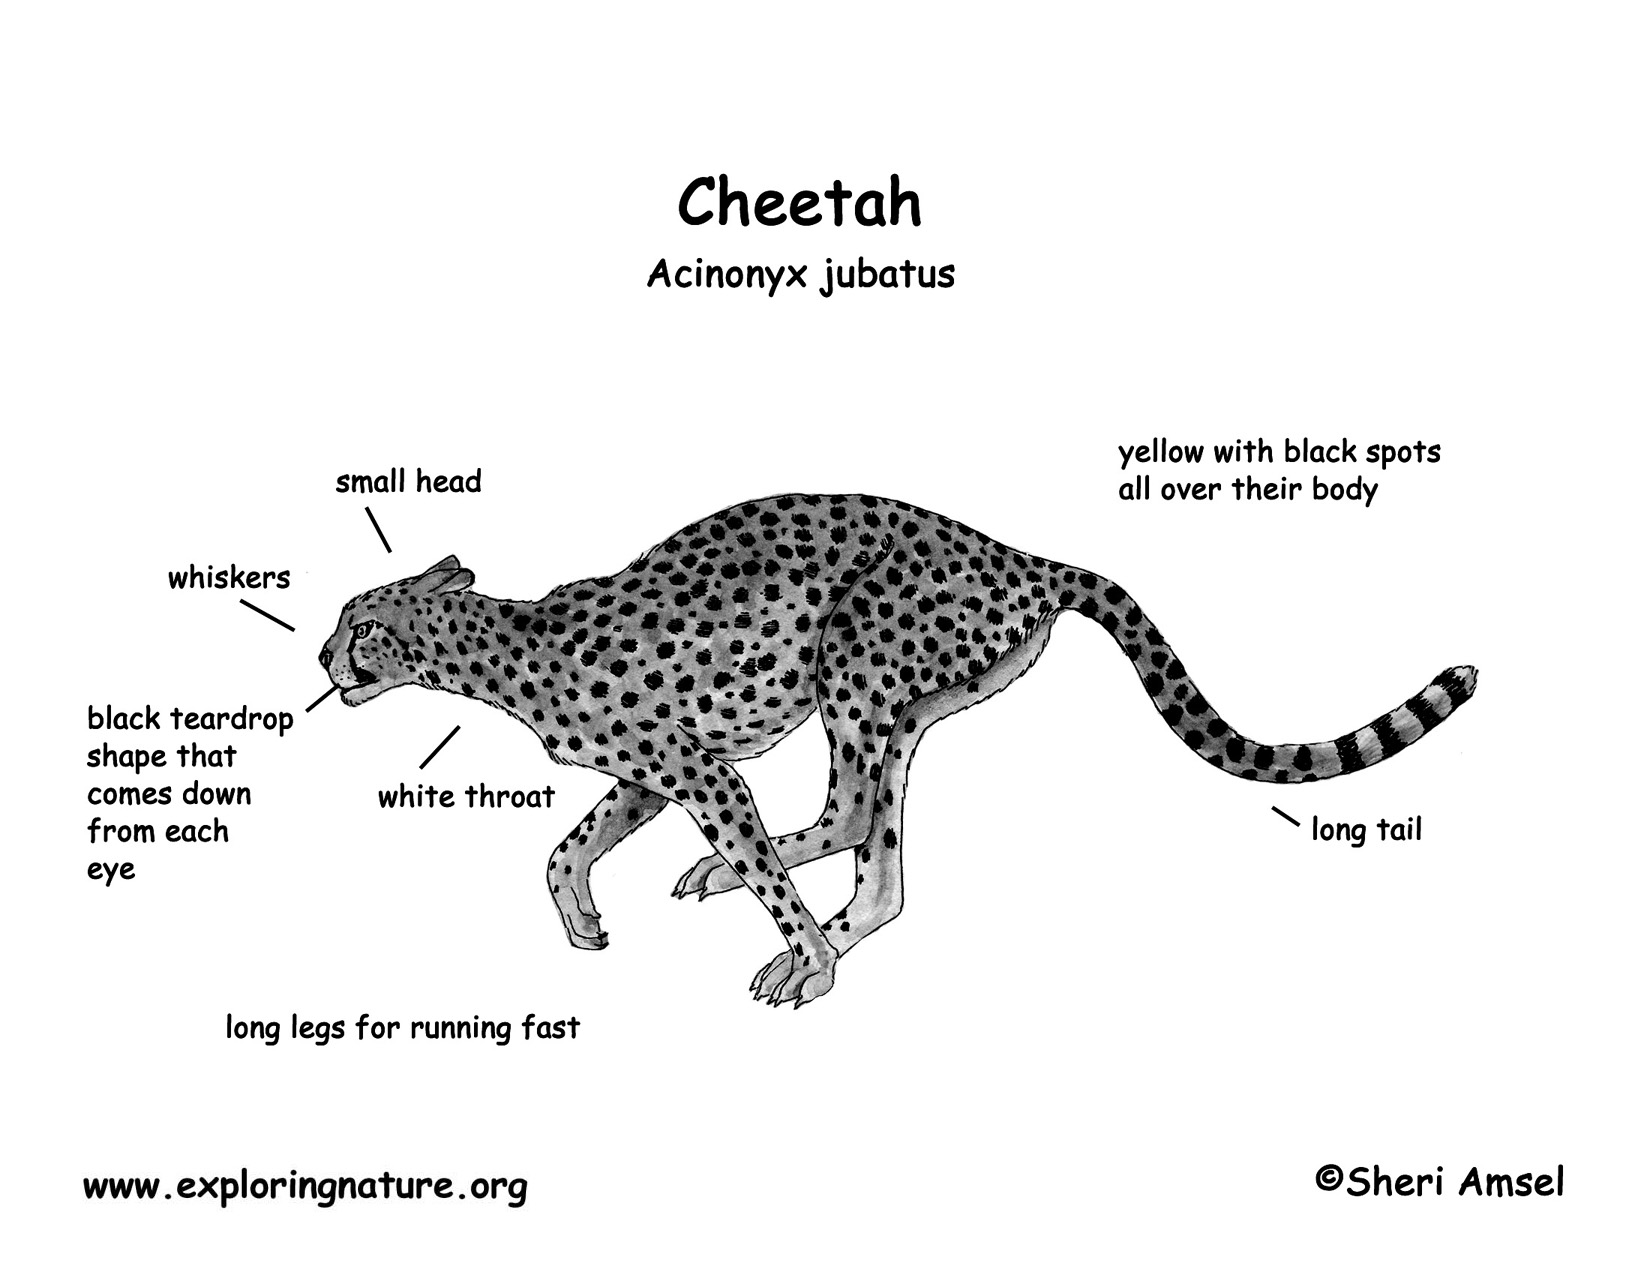 Simple Eye Diagram Of Cheetah Books Wiring Rh Exploringnature Org A